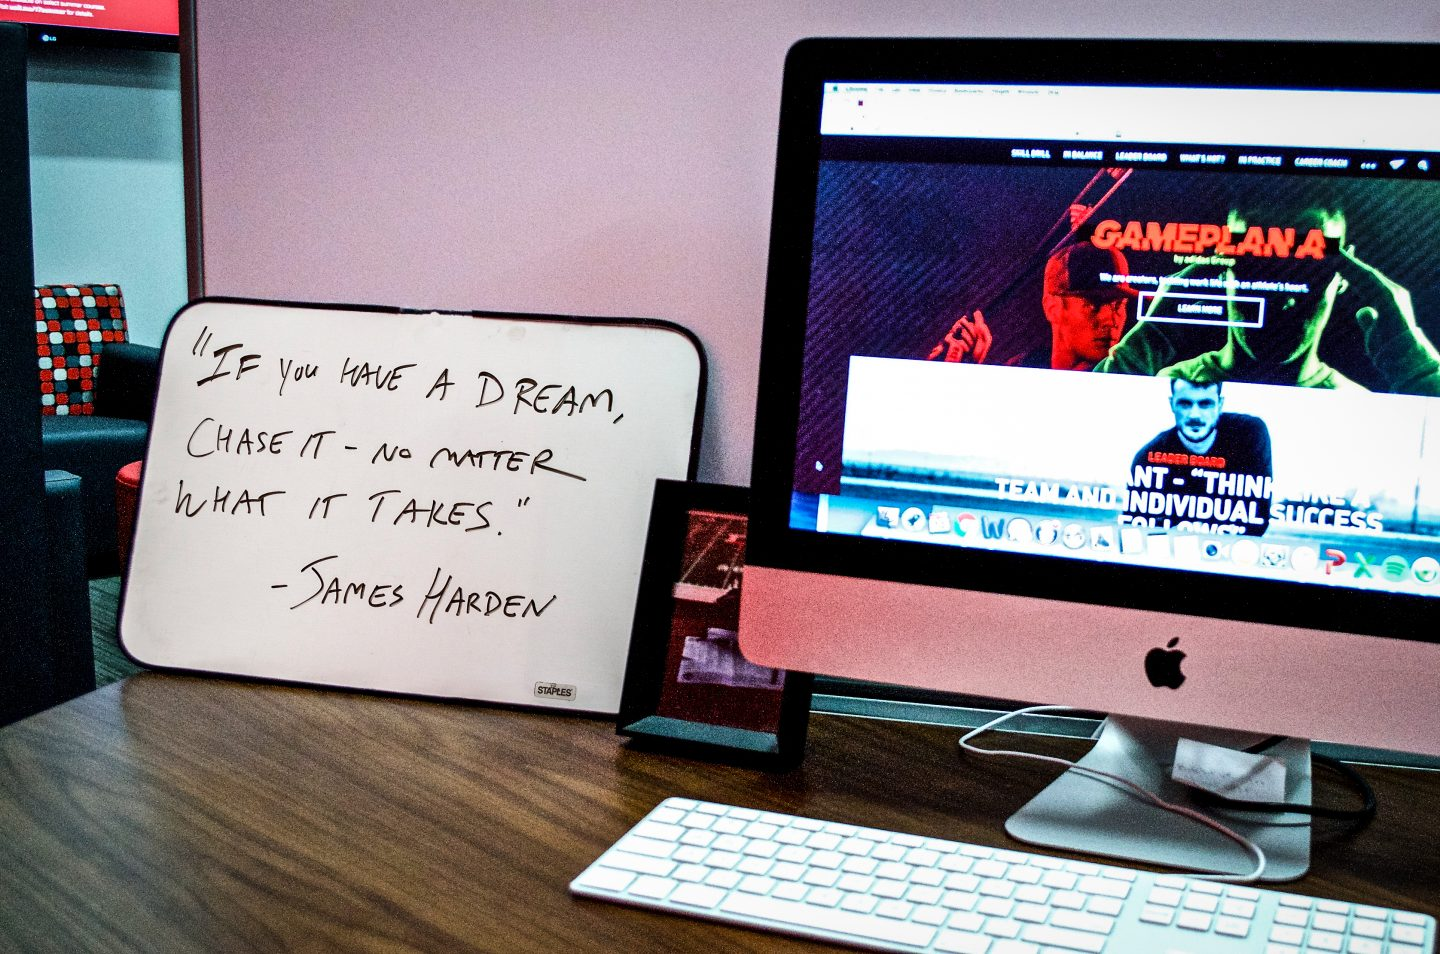 GamePlan A-James Harden-quote-if-you-have-a-dream-chase-it-no-matter-what-it-takes-motivation-board-desk